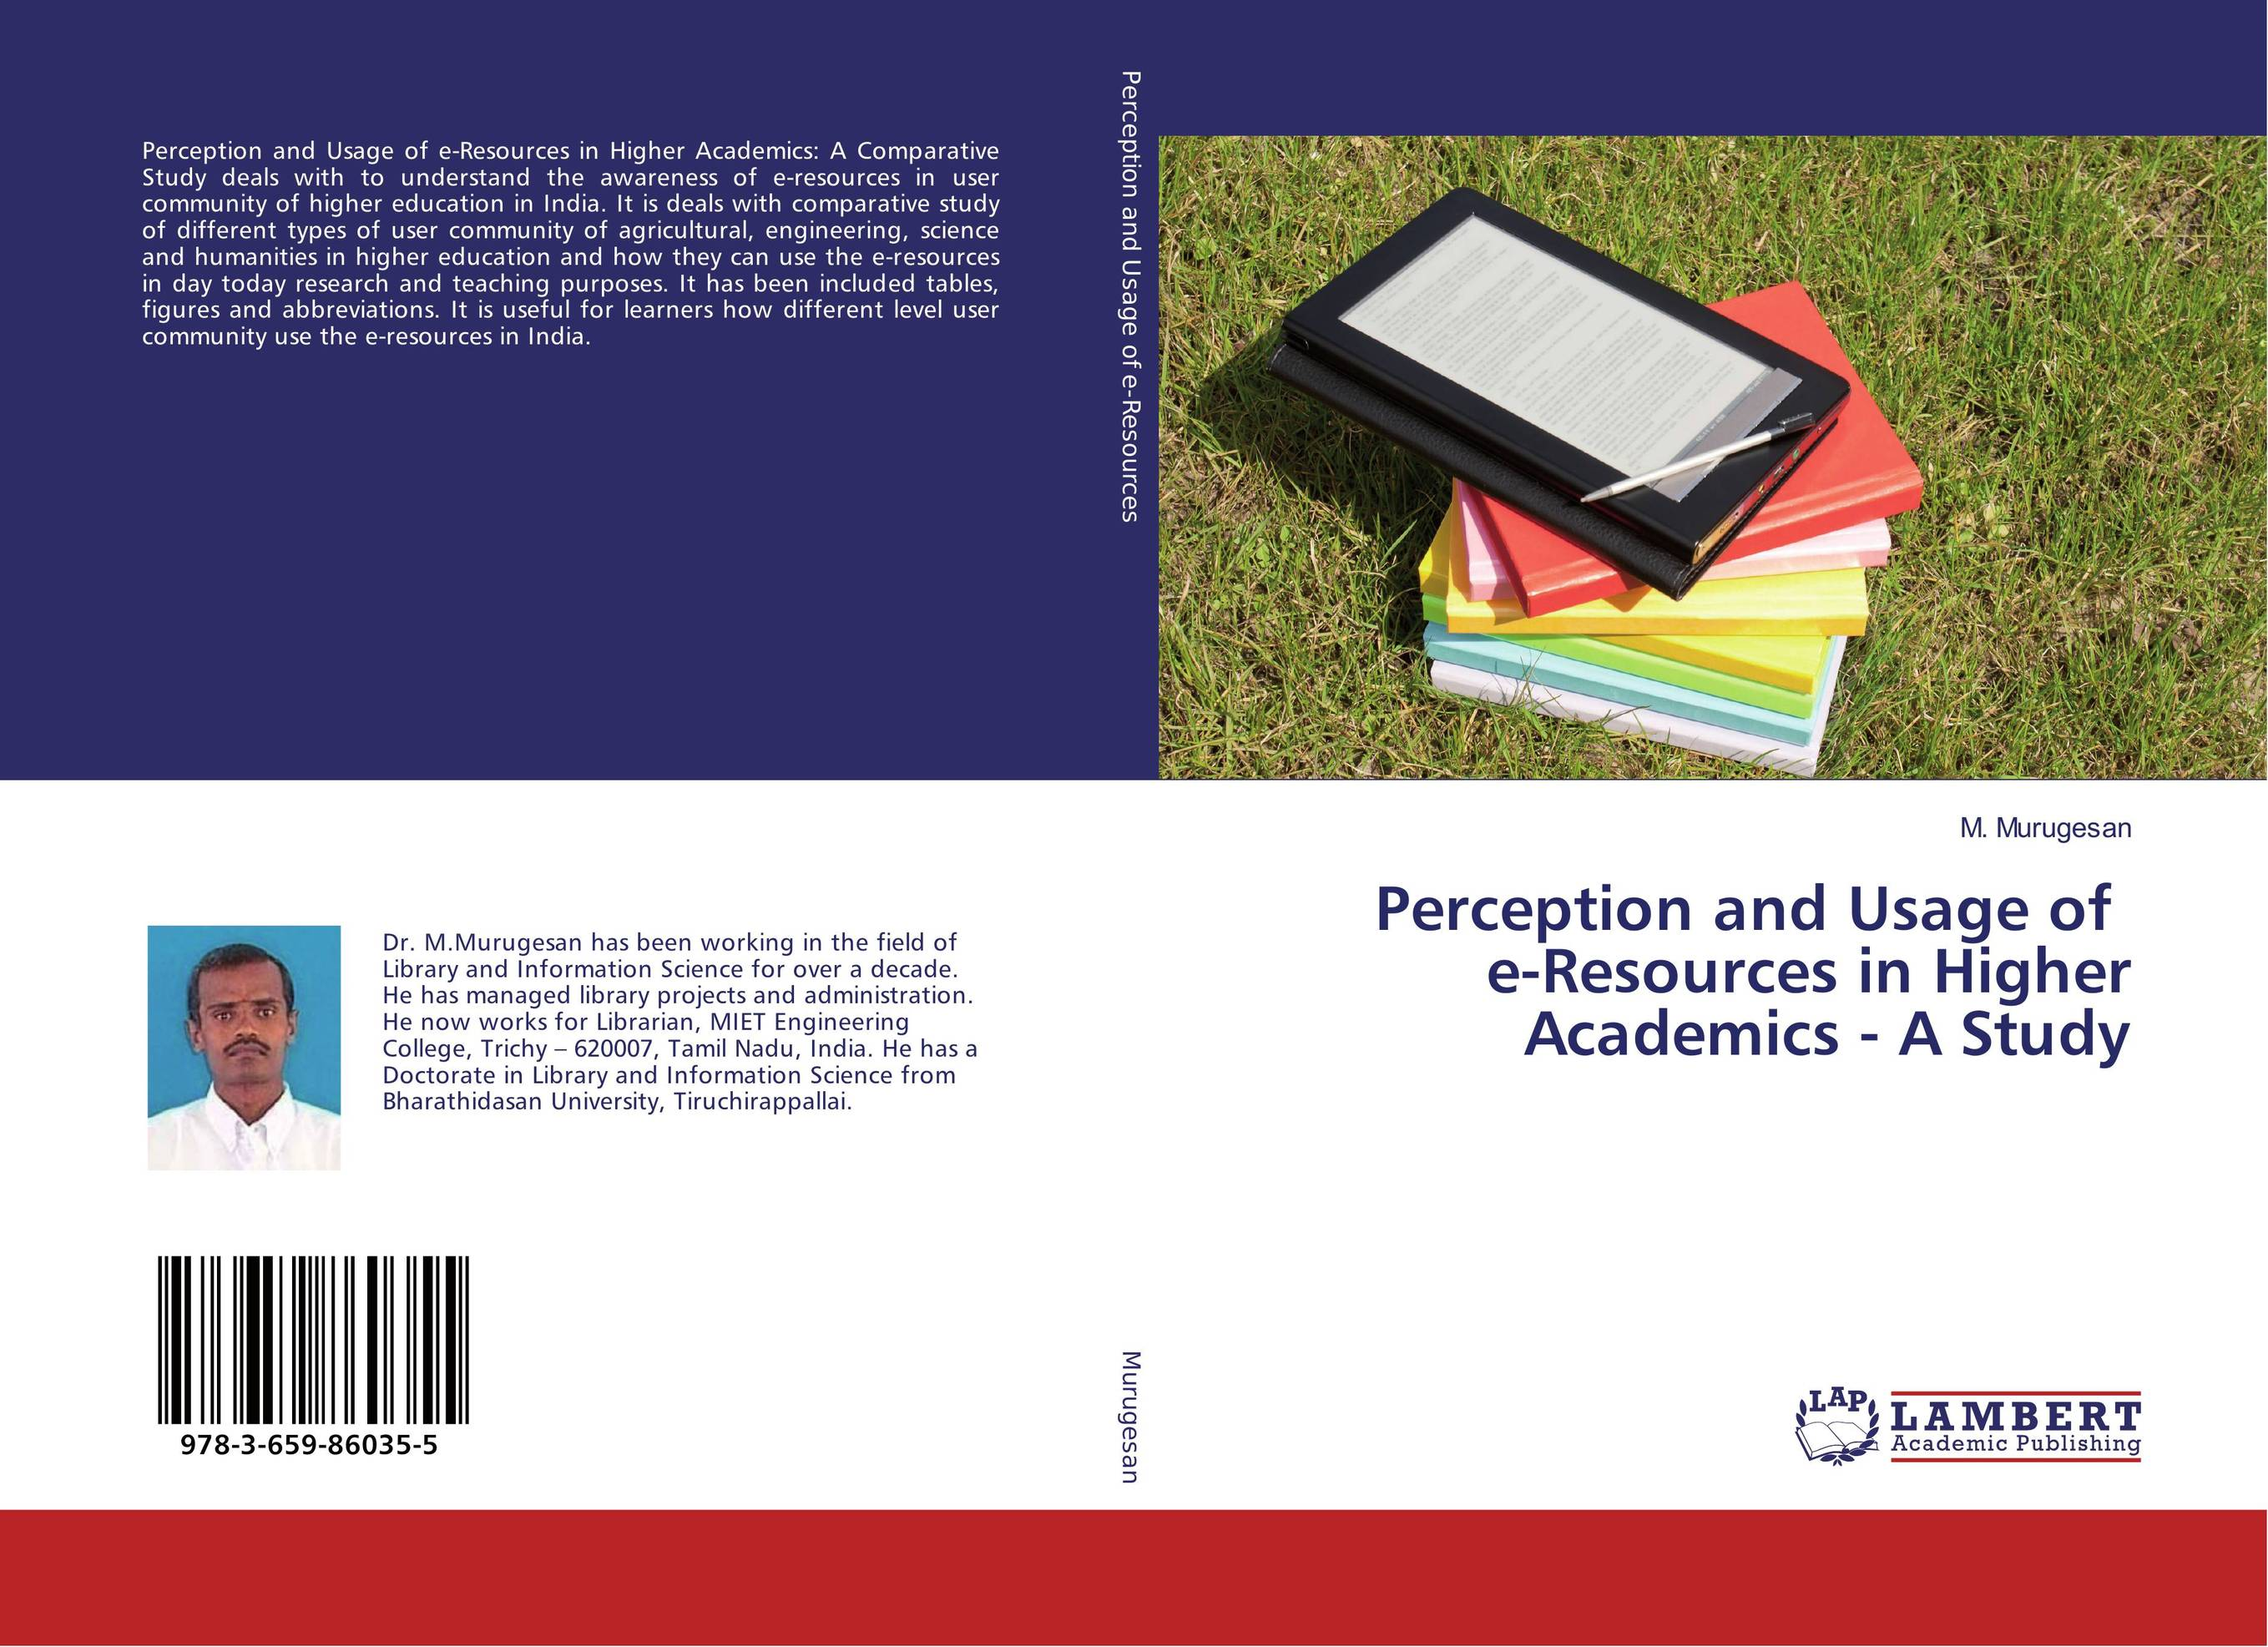 Perception and Usage of e-Resources in Higher Academics - A Study кальсоны user кальсоны